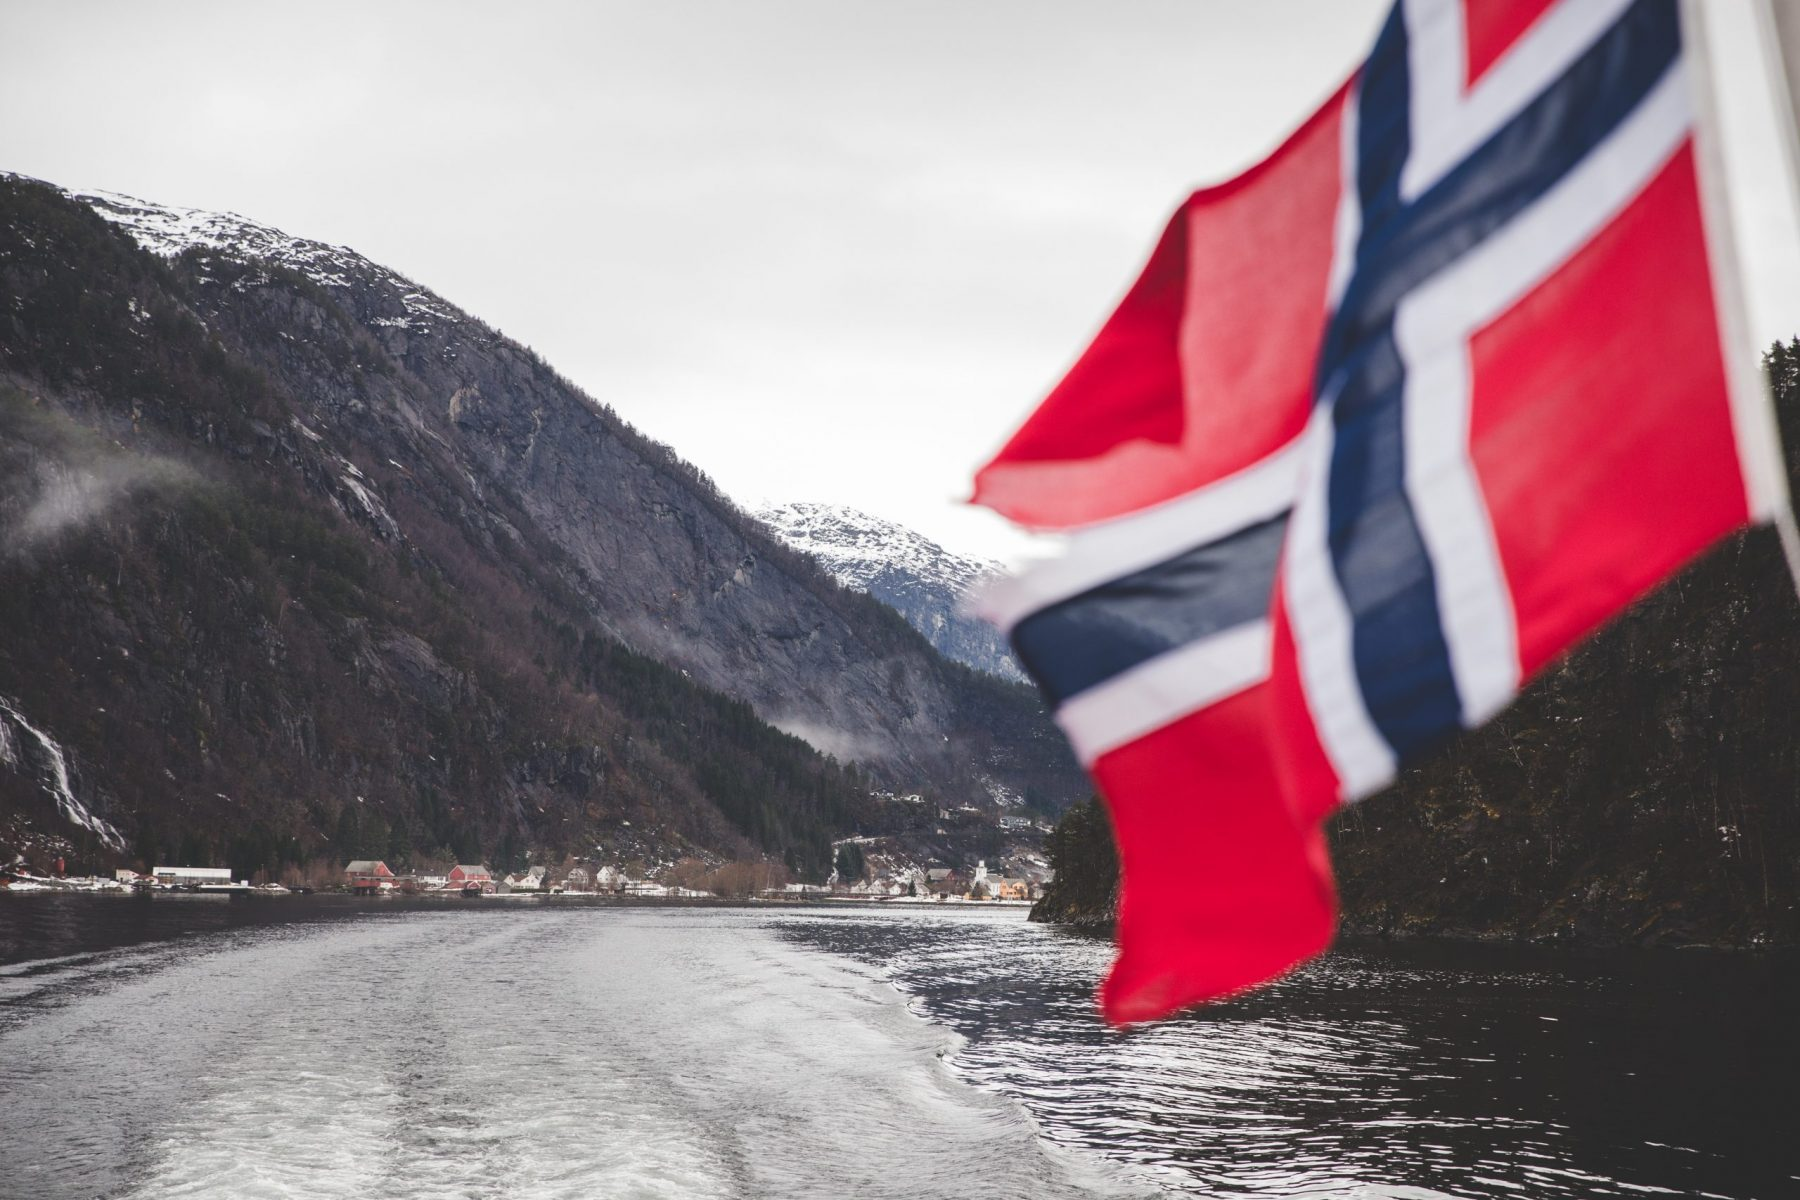 Norwegian Flag Waving on the Rødne Fjord Cruise Tour Boat with mountains in the background